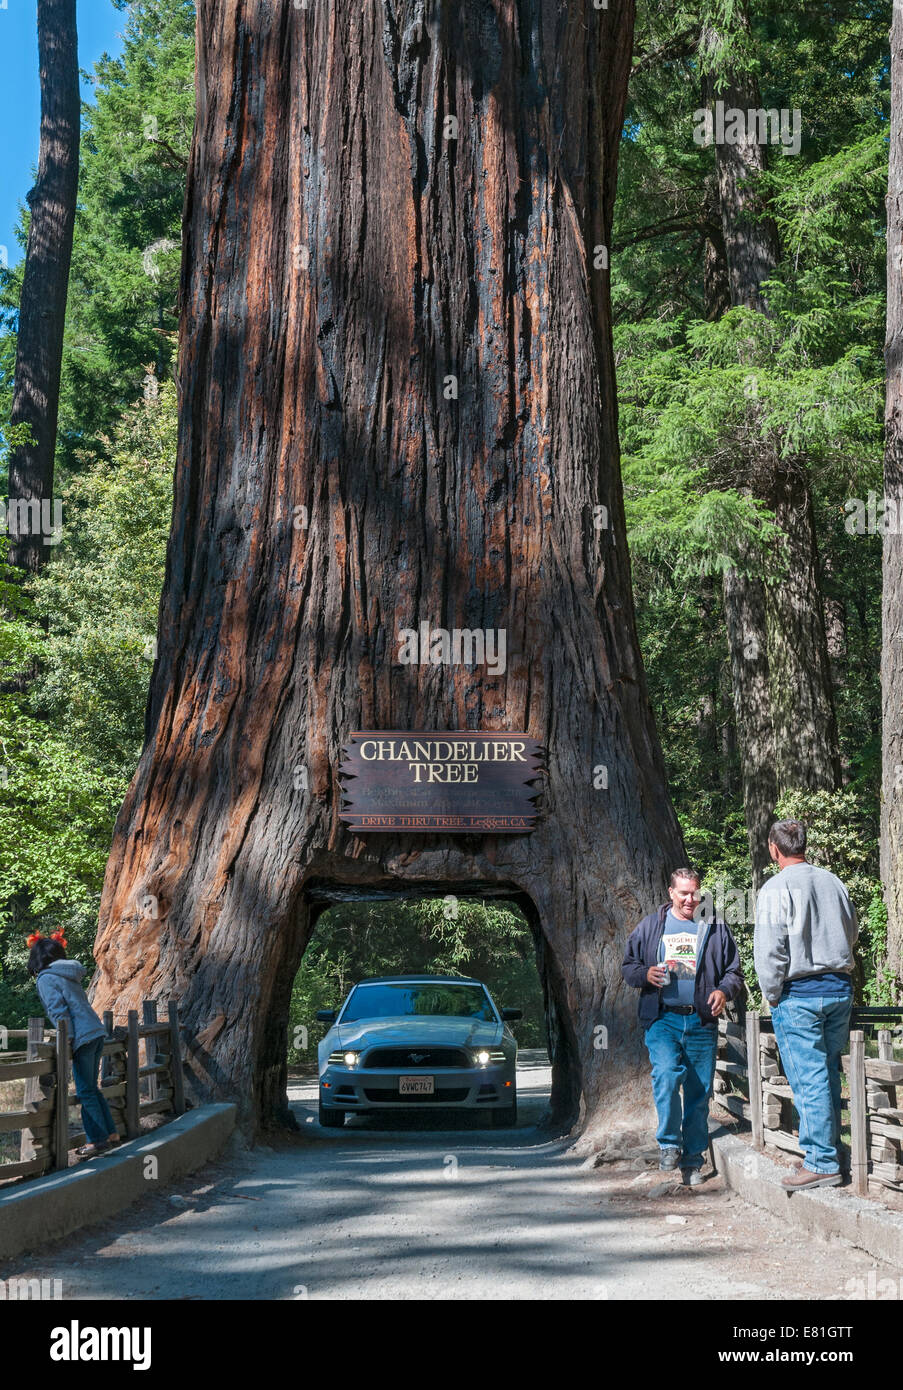 California leggett chandelier tree drive through tree giant california leggett chandelier tree drive through tree giant redwood tree 315 feet tall aloadofball Choice Image